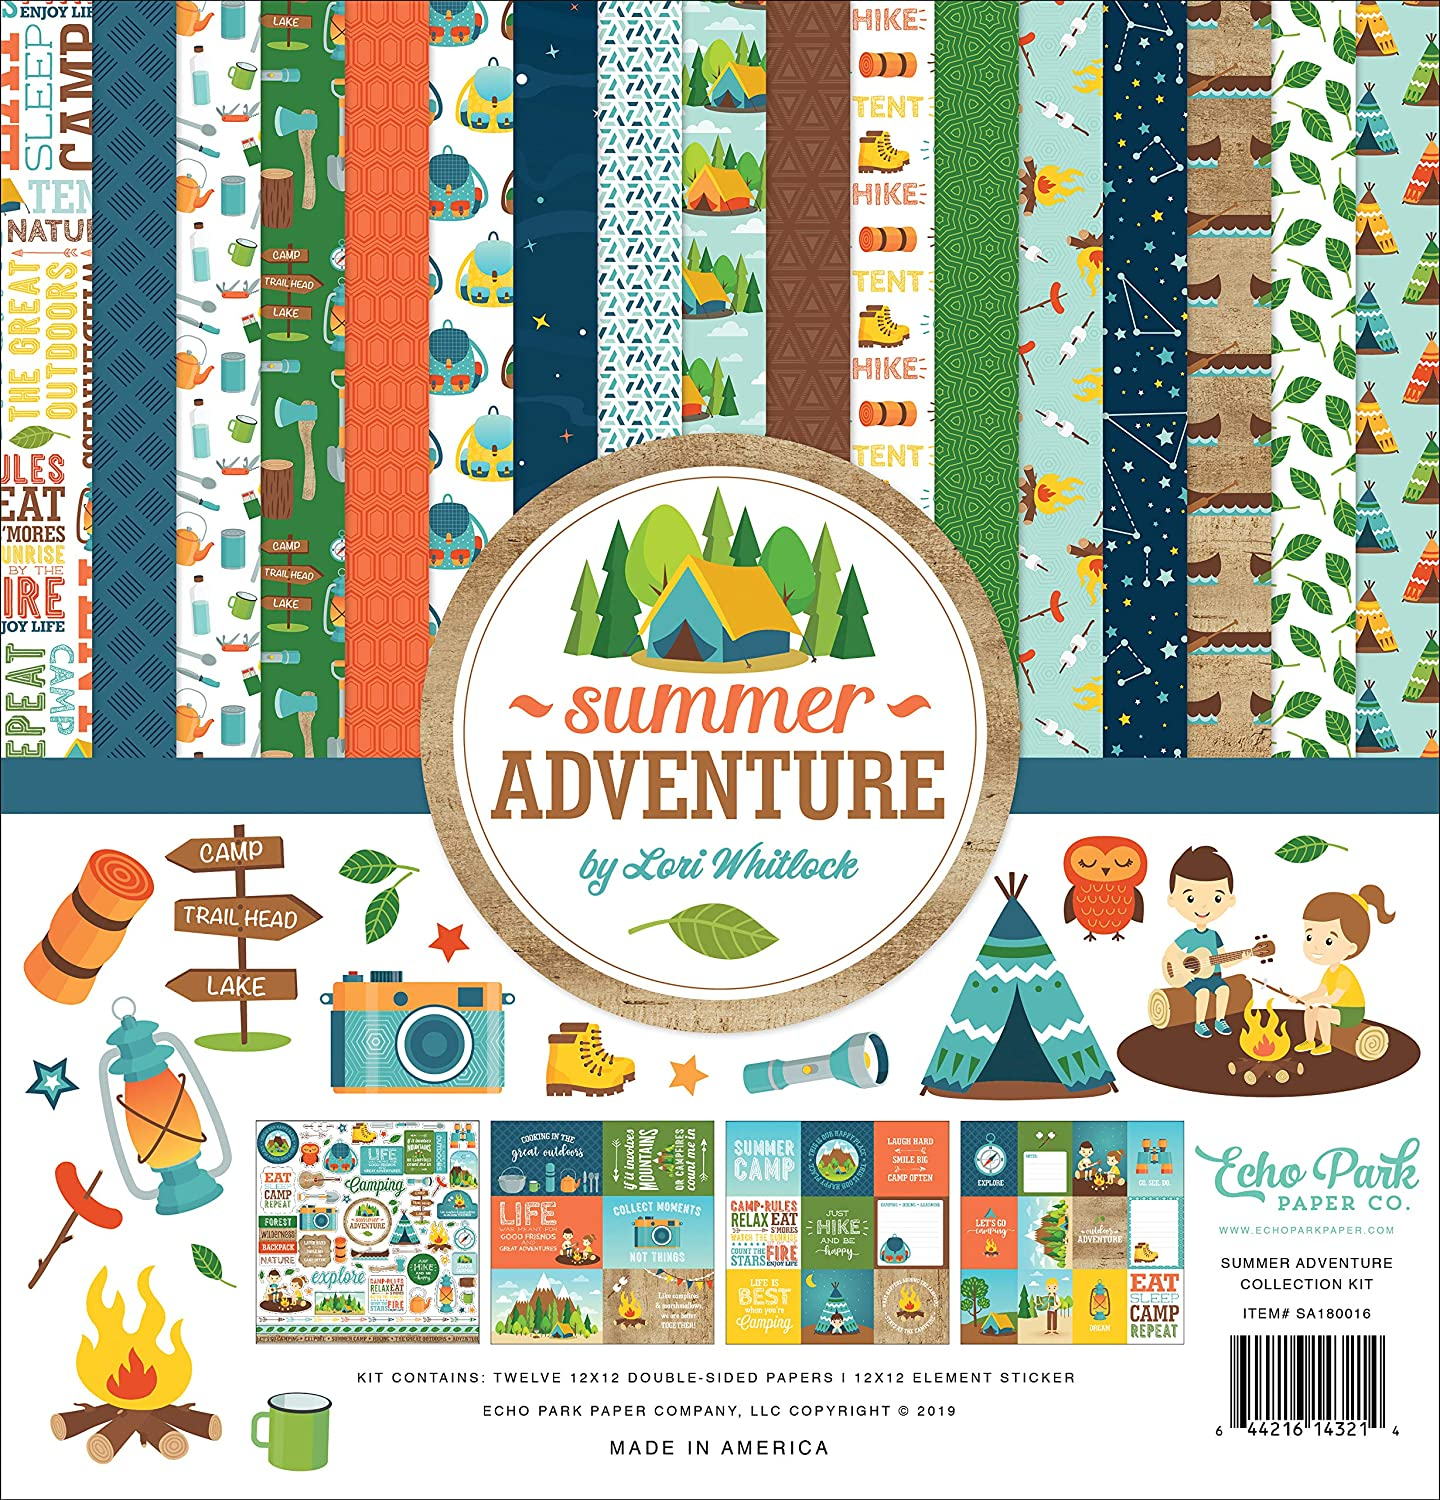 Green Orange Navy Brown Echo Park Paper Company SA180016 Summer Adventure Collection Kit Paper red Teal